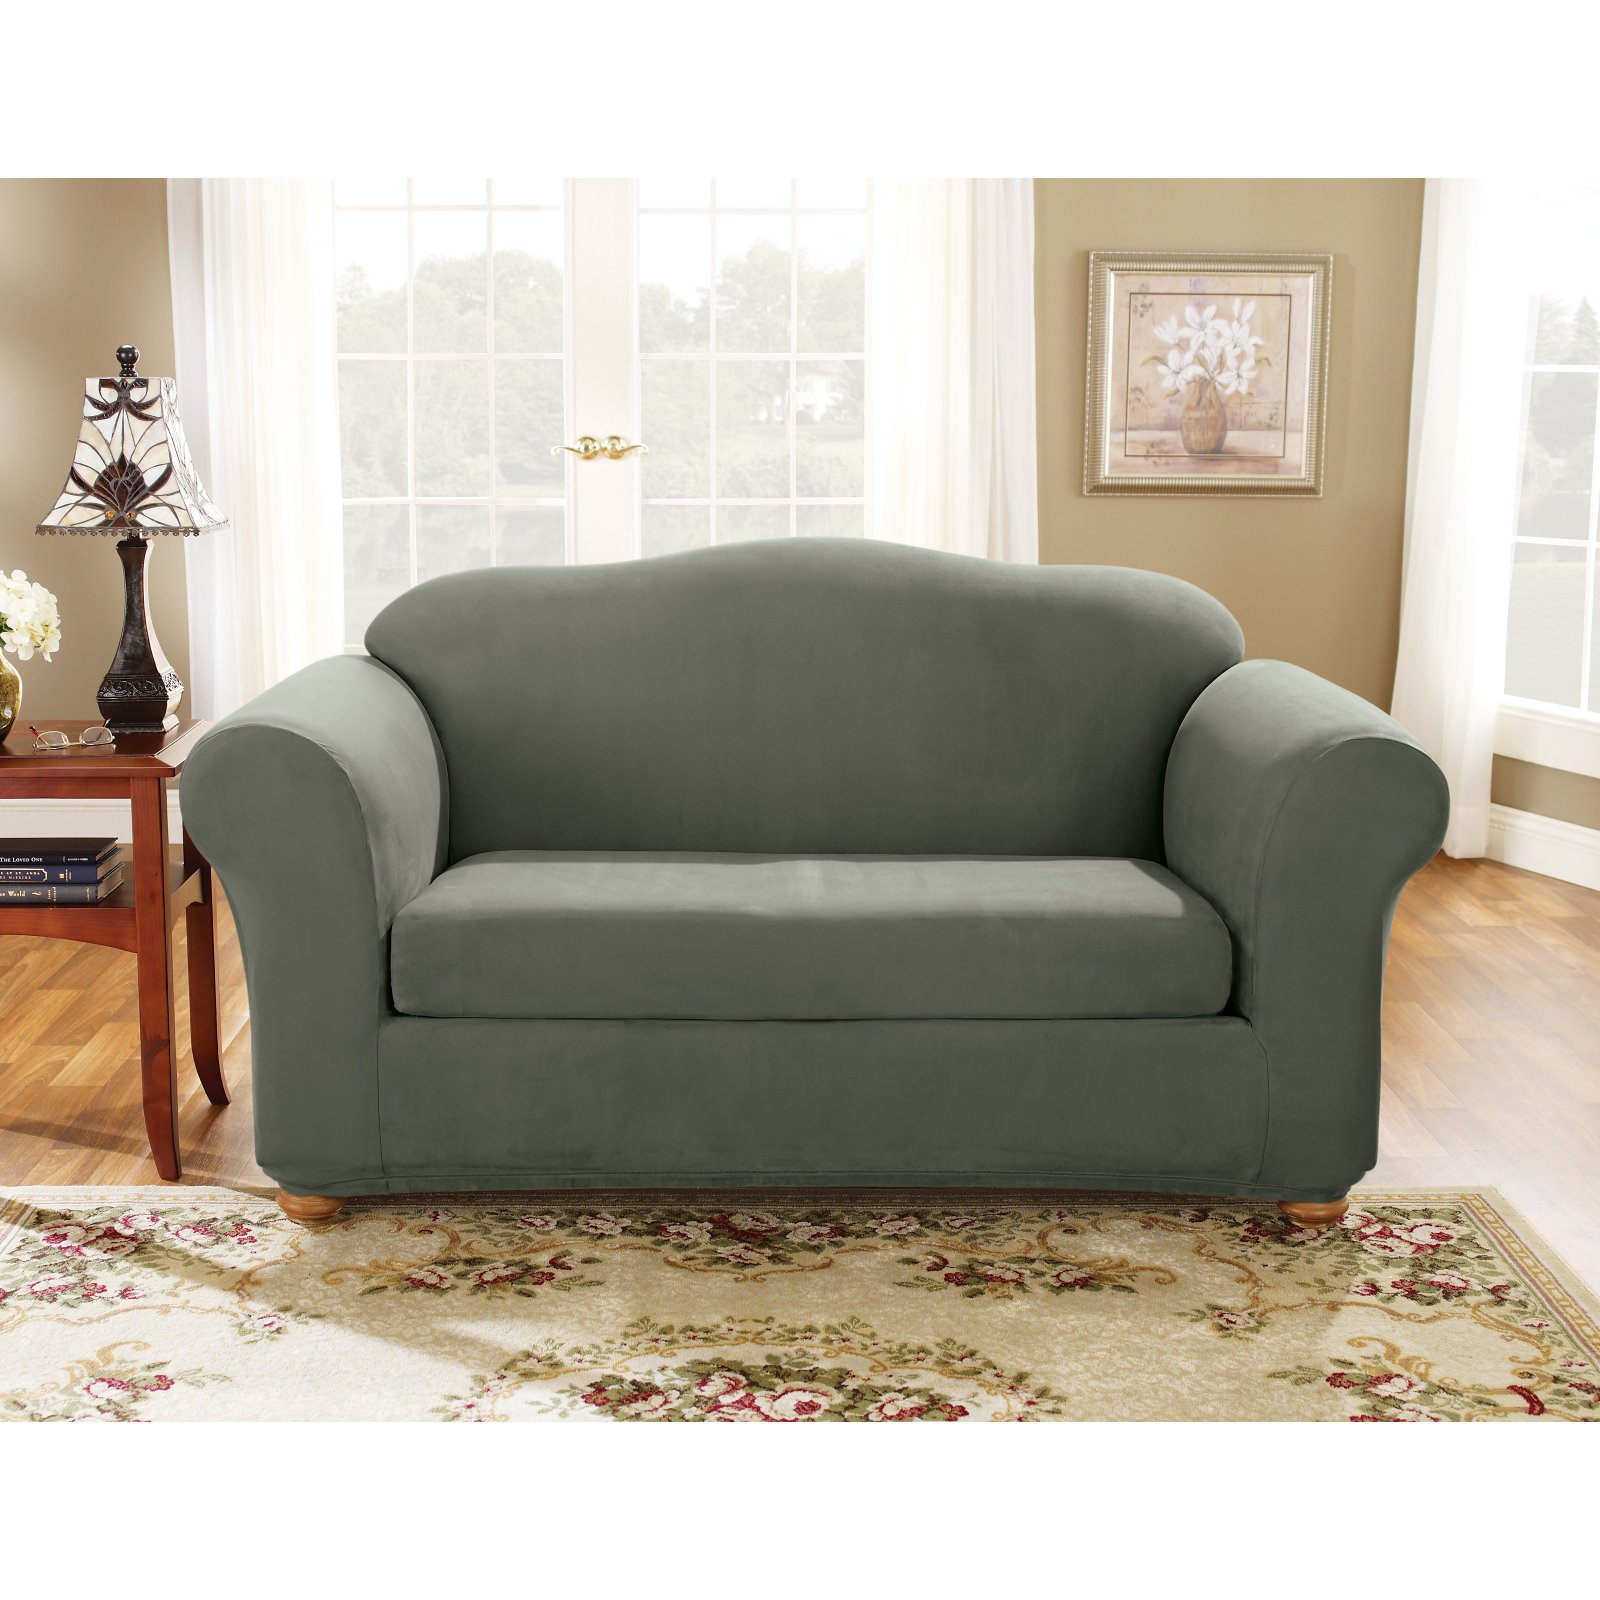 Sure Fit Stretch Suede 2-Piece Sofa Slipcover